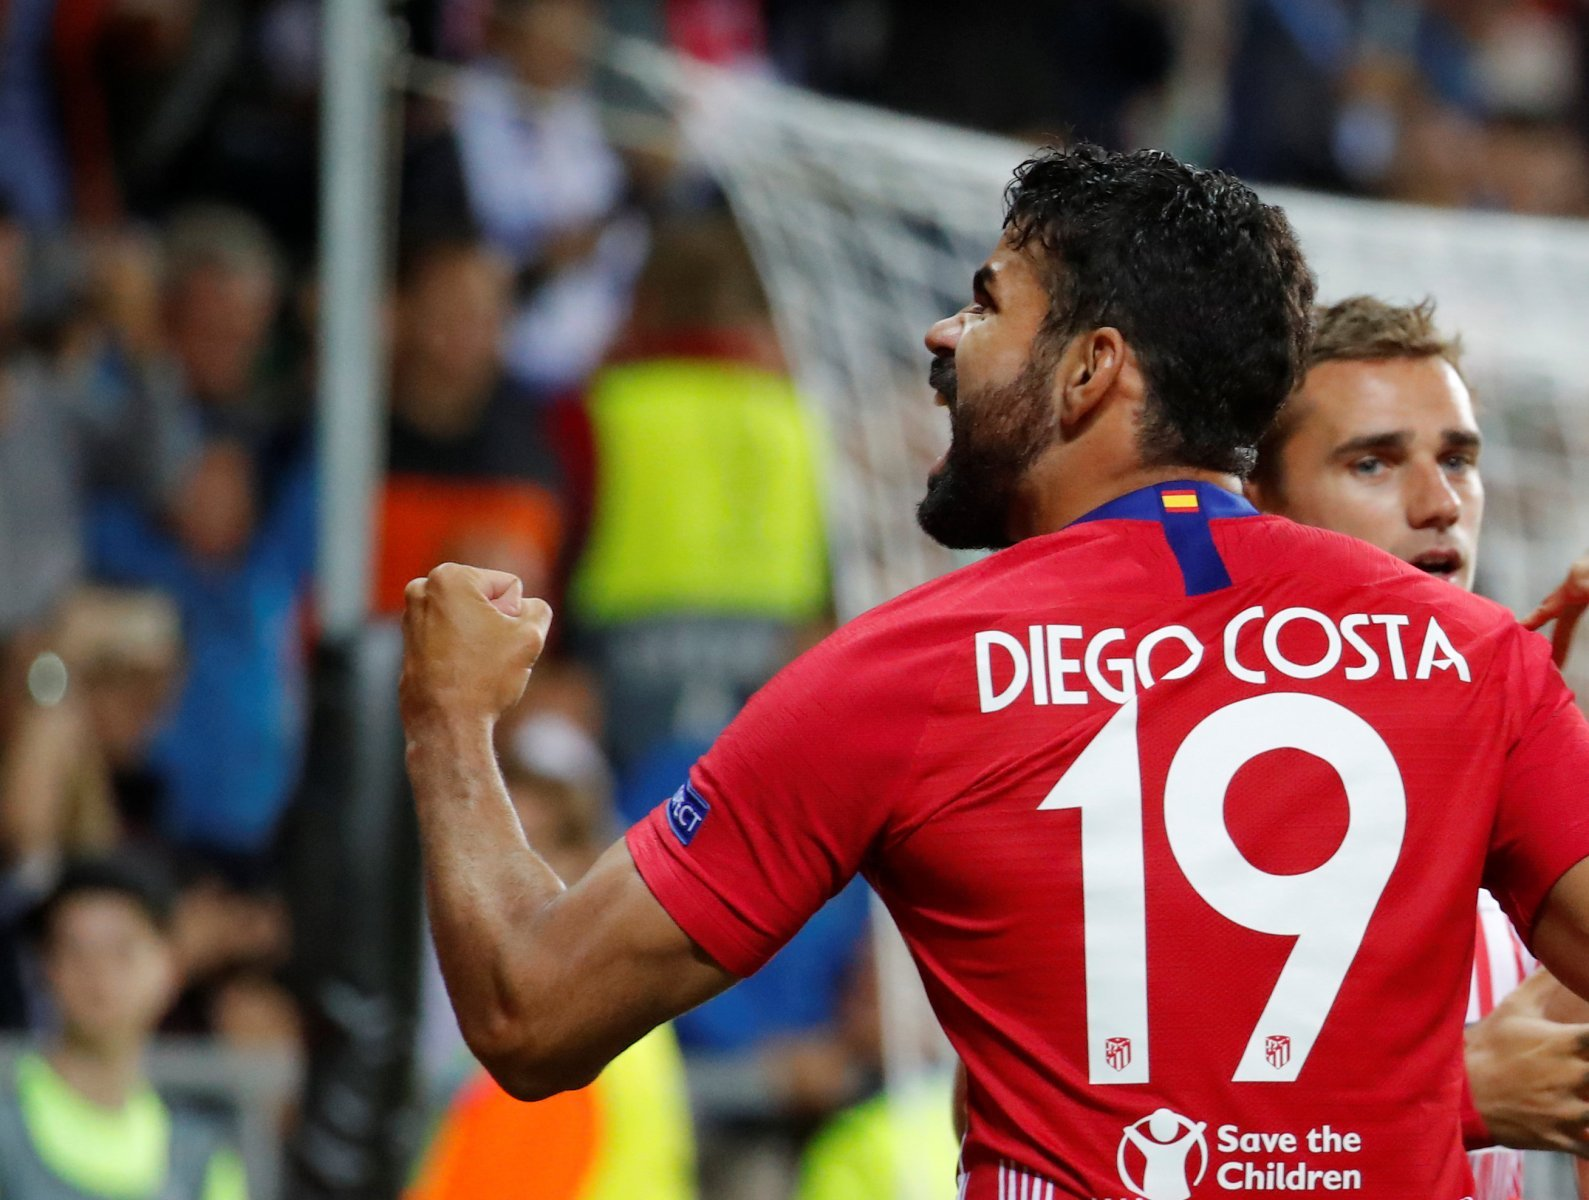 Chelsea fans are loving Diego Costa after Super Cup display